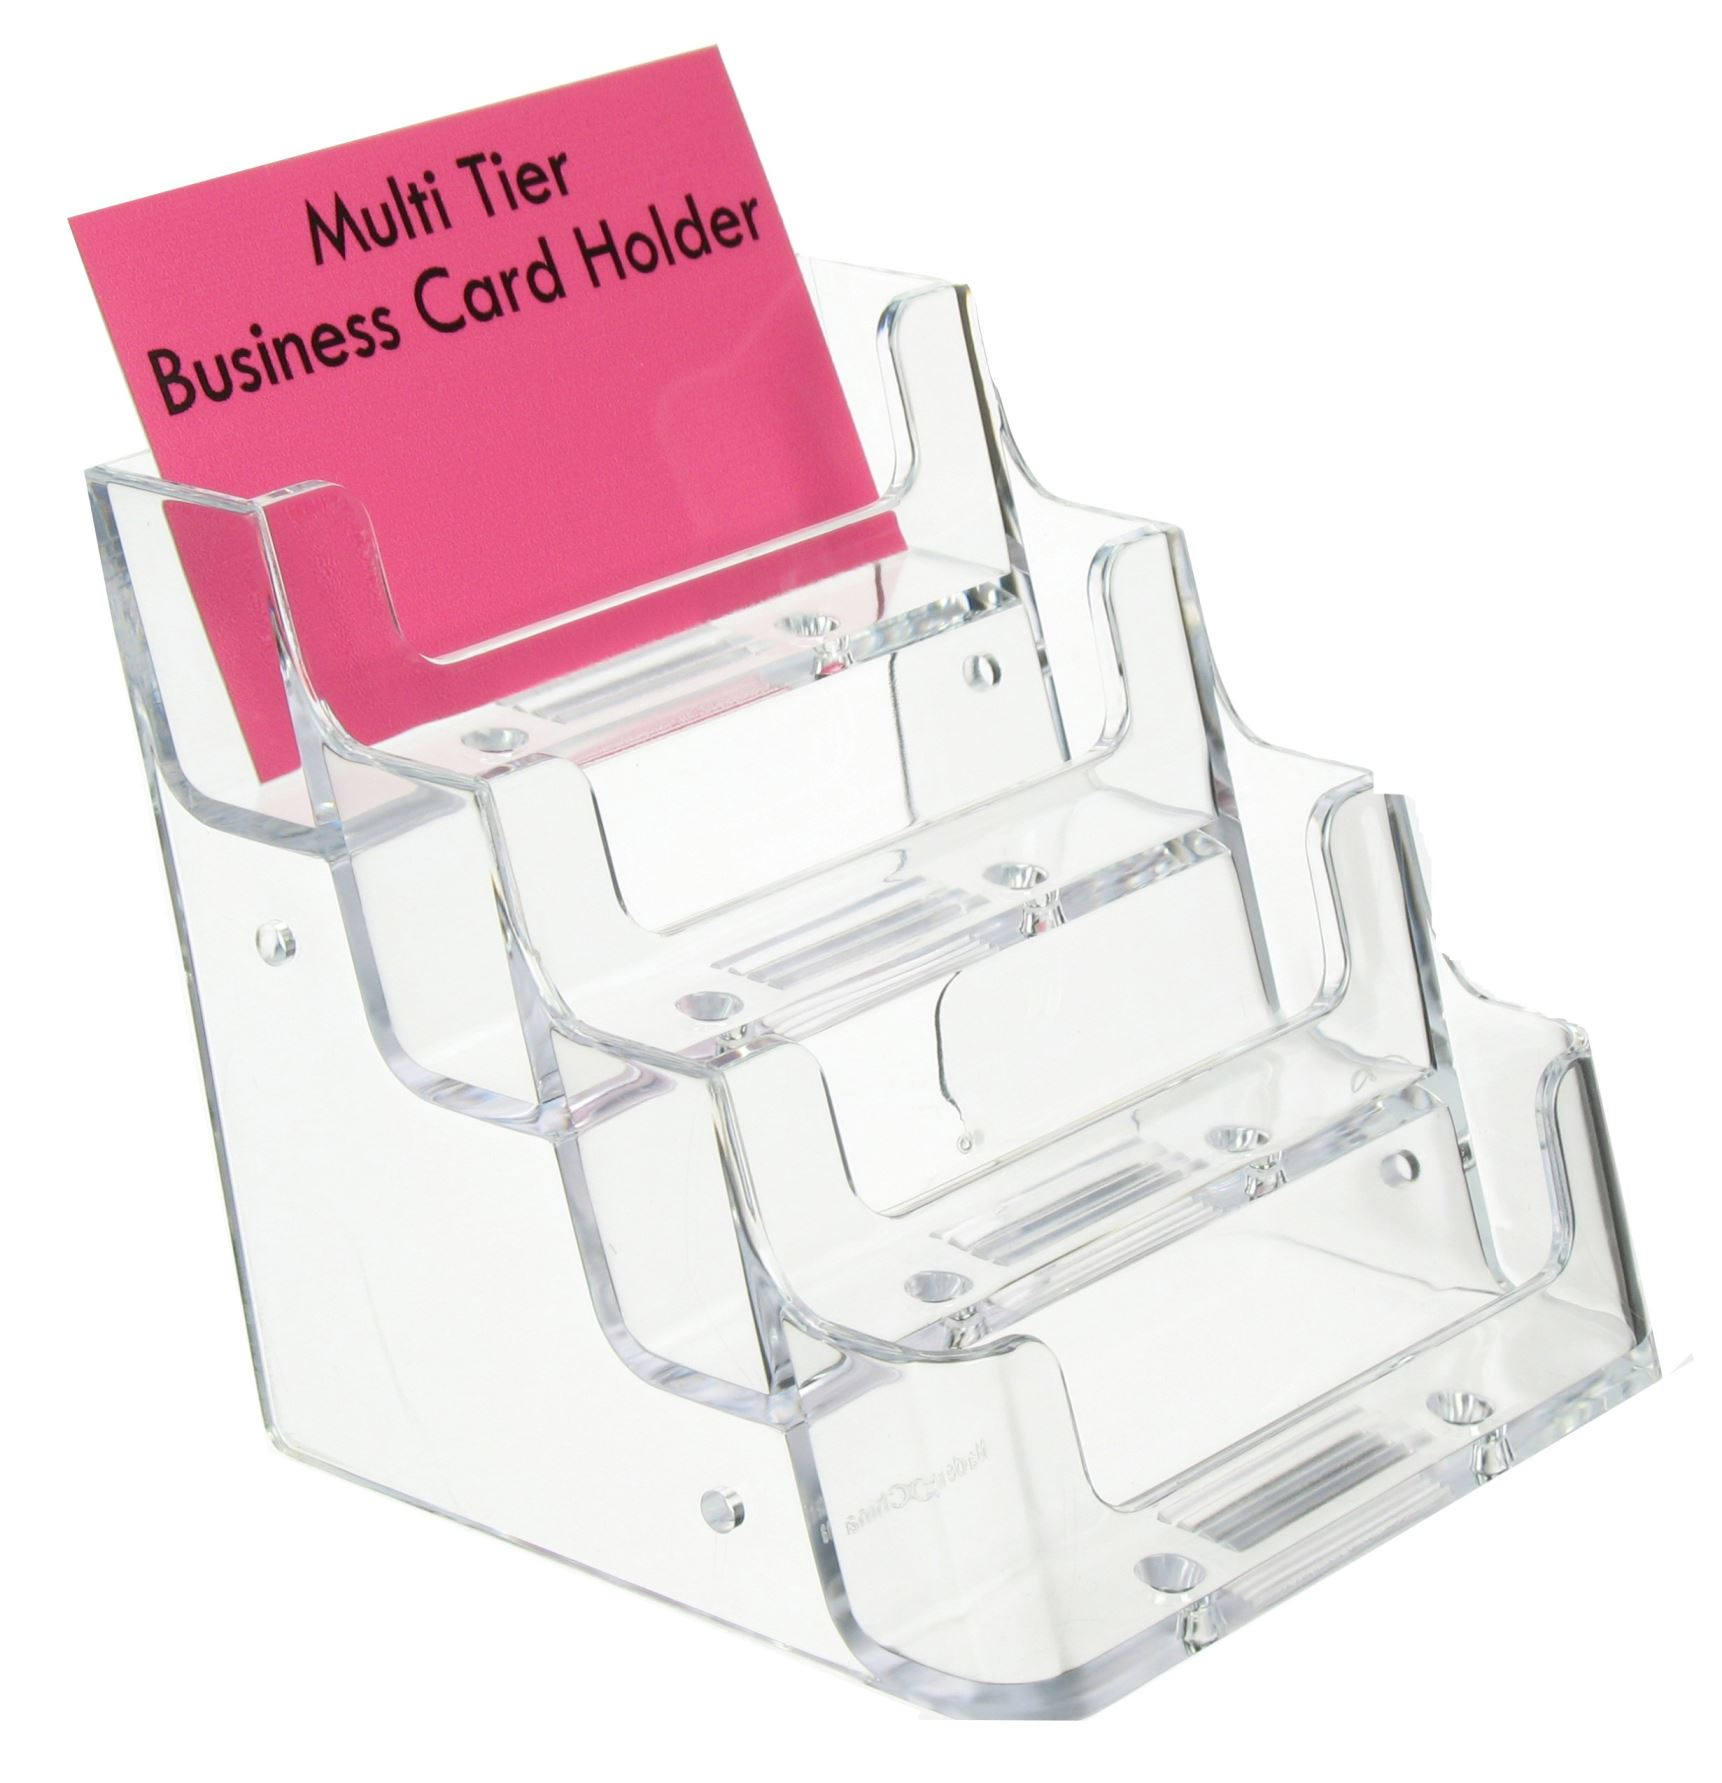 Business Card Holder 4 Pocket Multi Tier Cards Office Exhibition Display OW4238